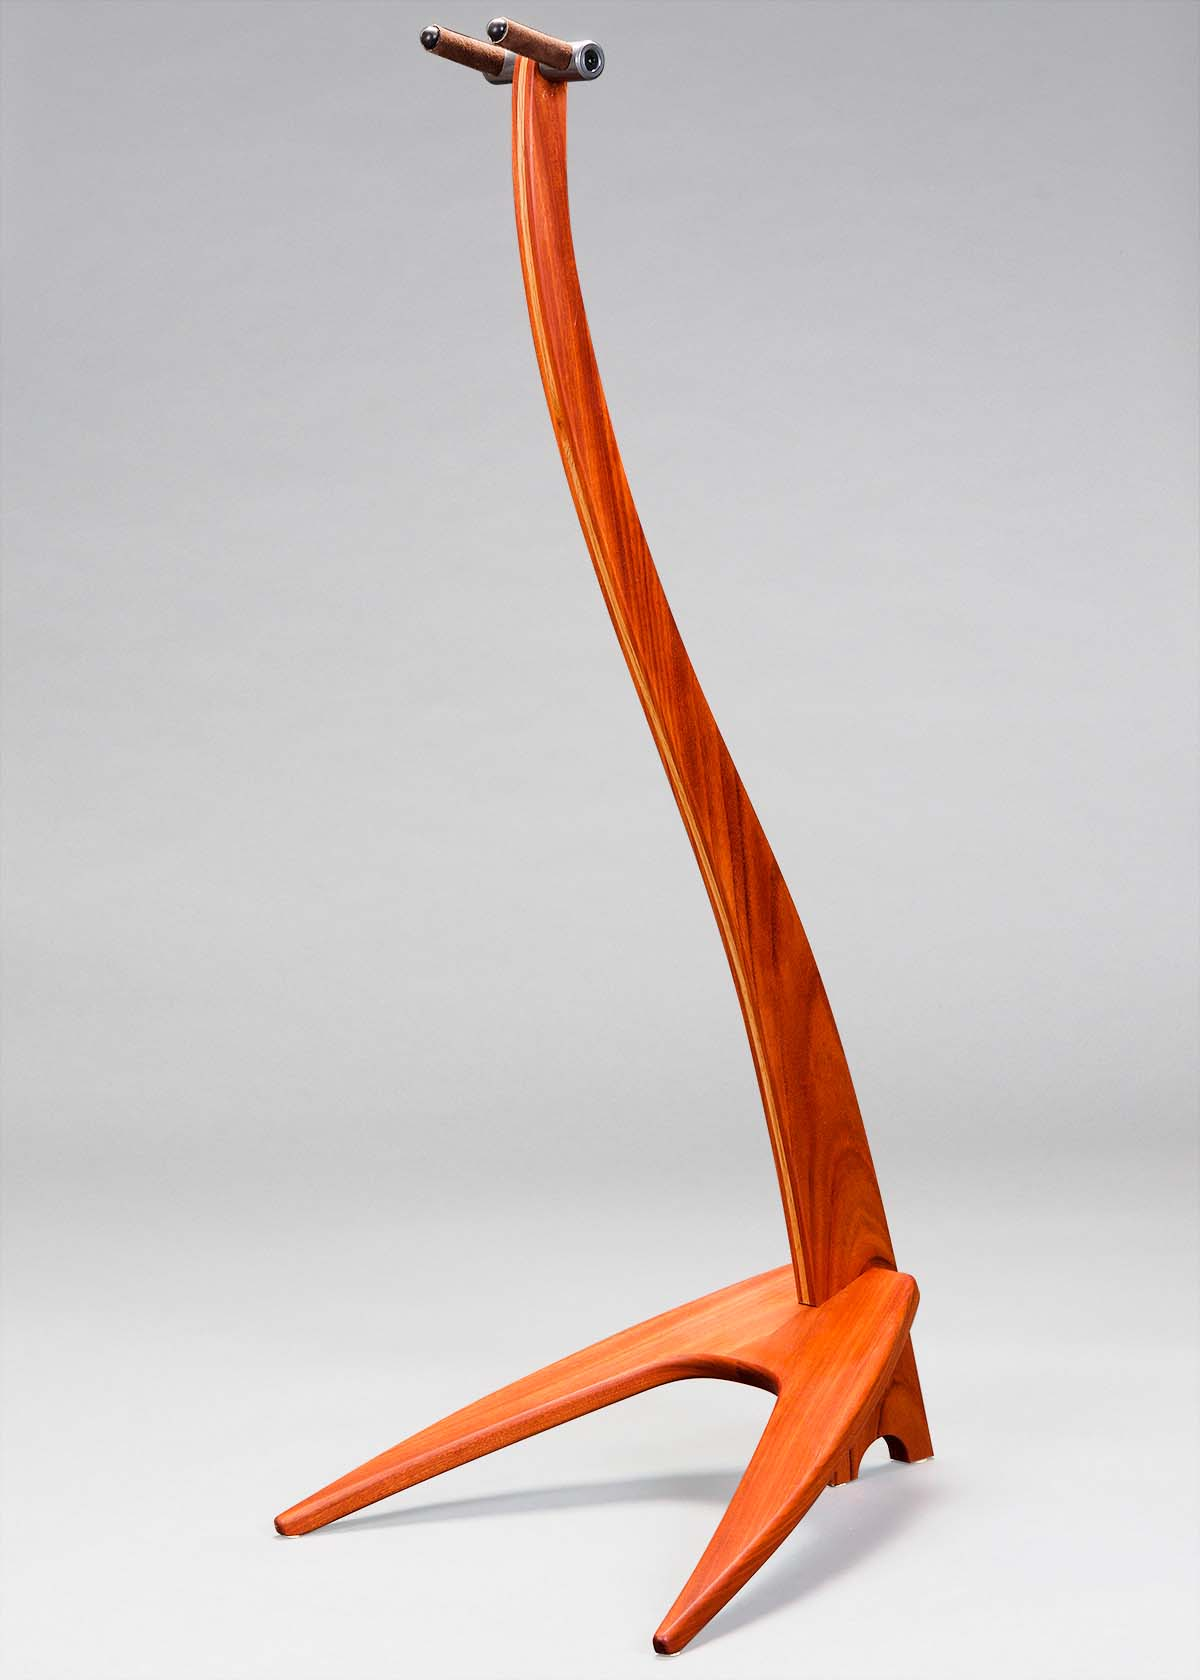 WM Guitar Stand in Santos Mahogany with Red Oak Inlay